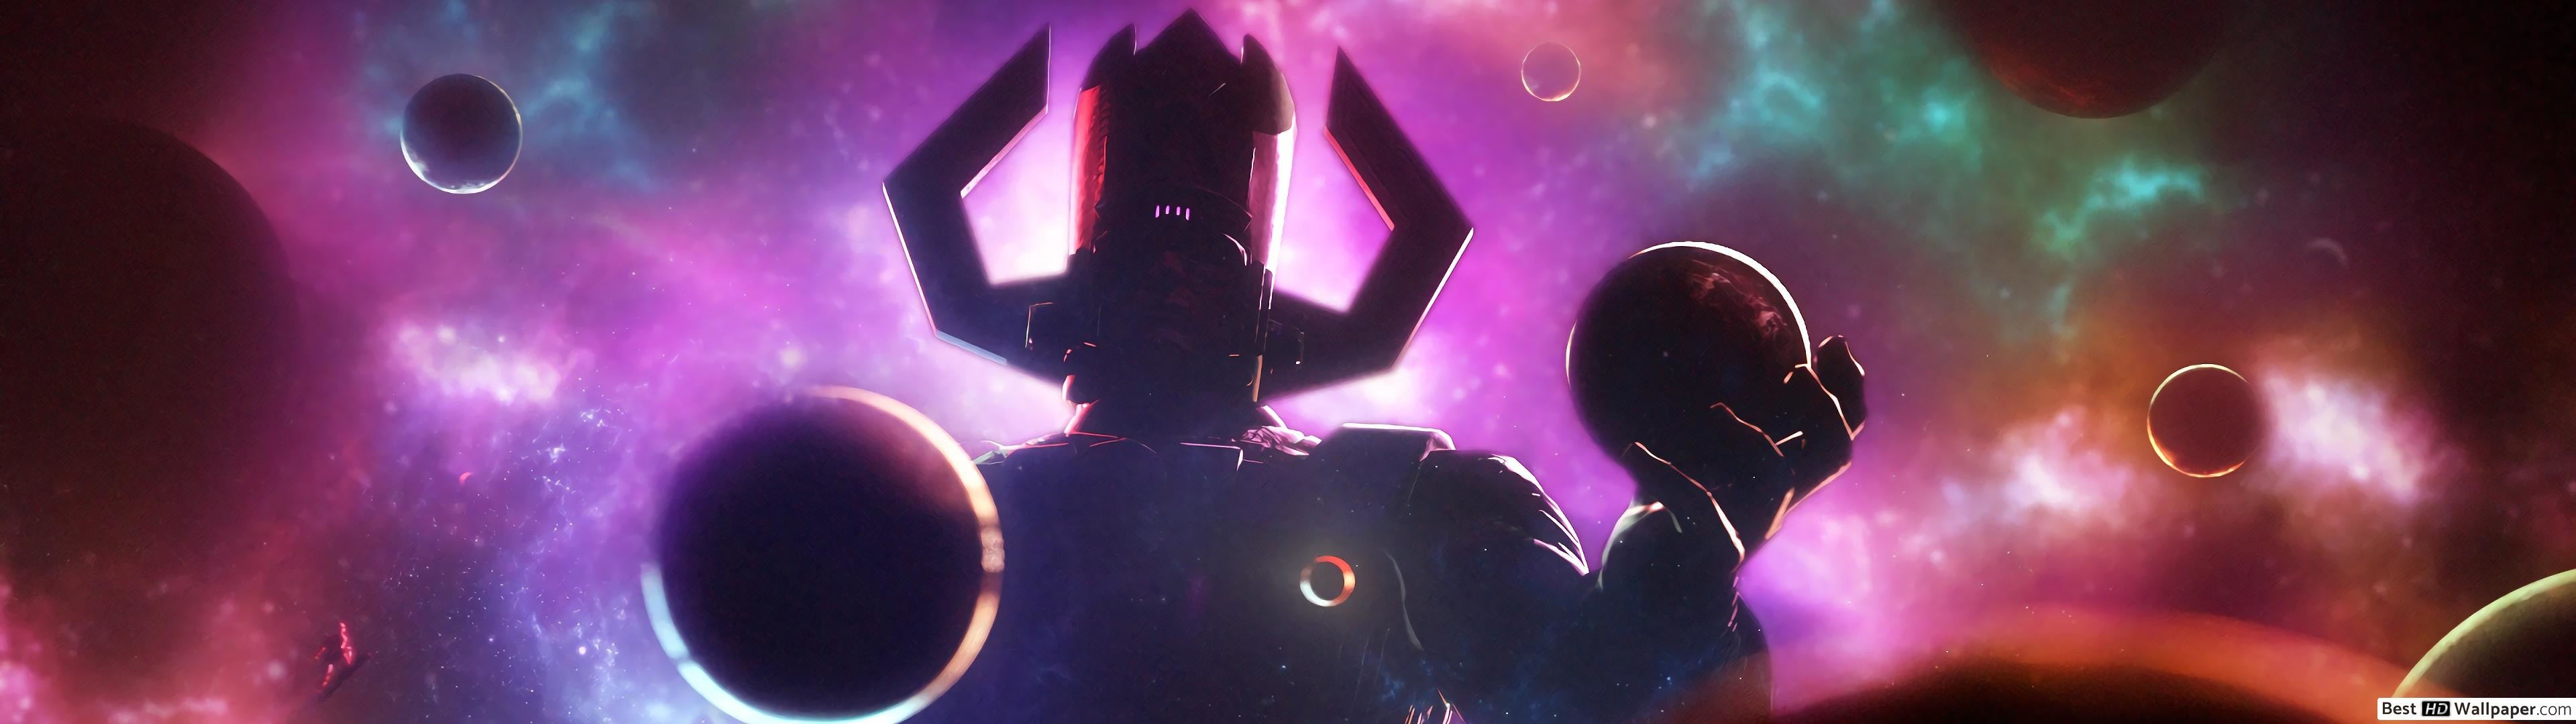 Res: 3840x1080, Cool Artwork Wallpaper Of Galactus Source · Galactus HD wallpaper download